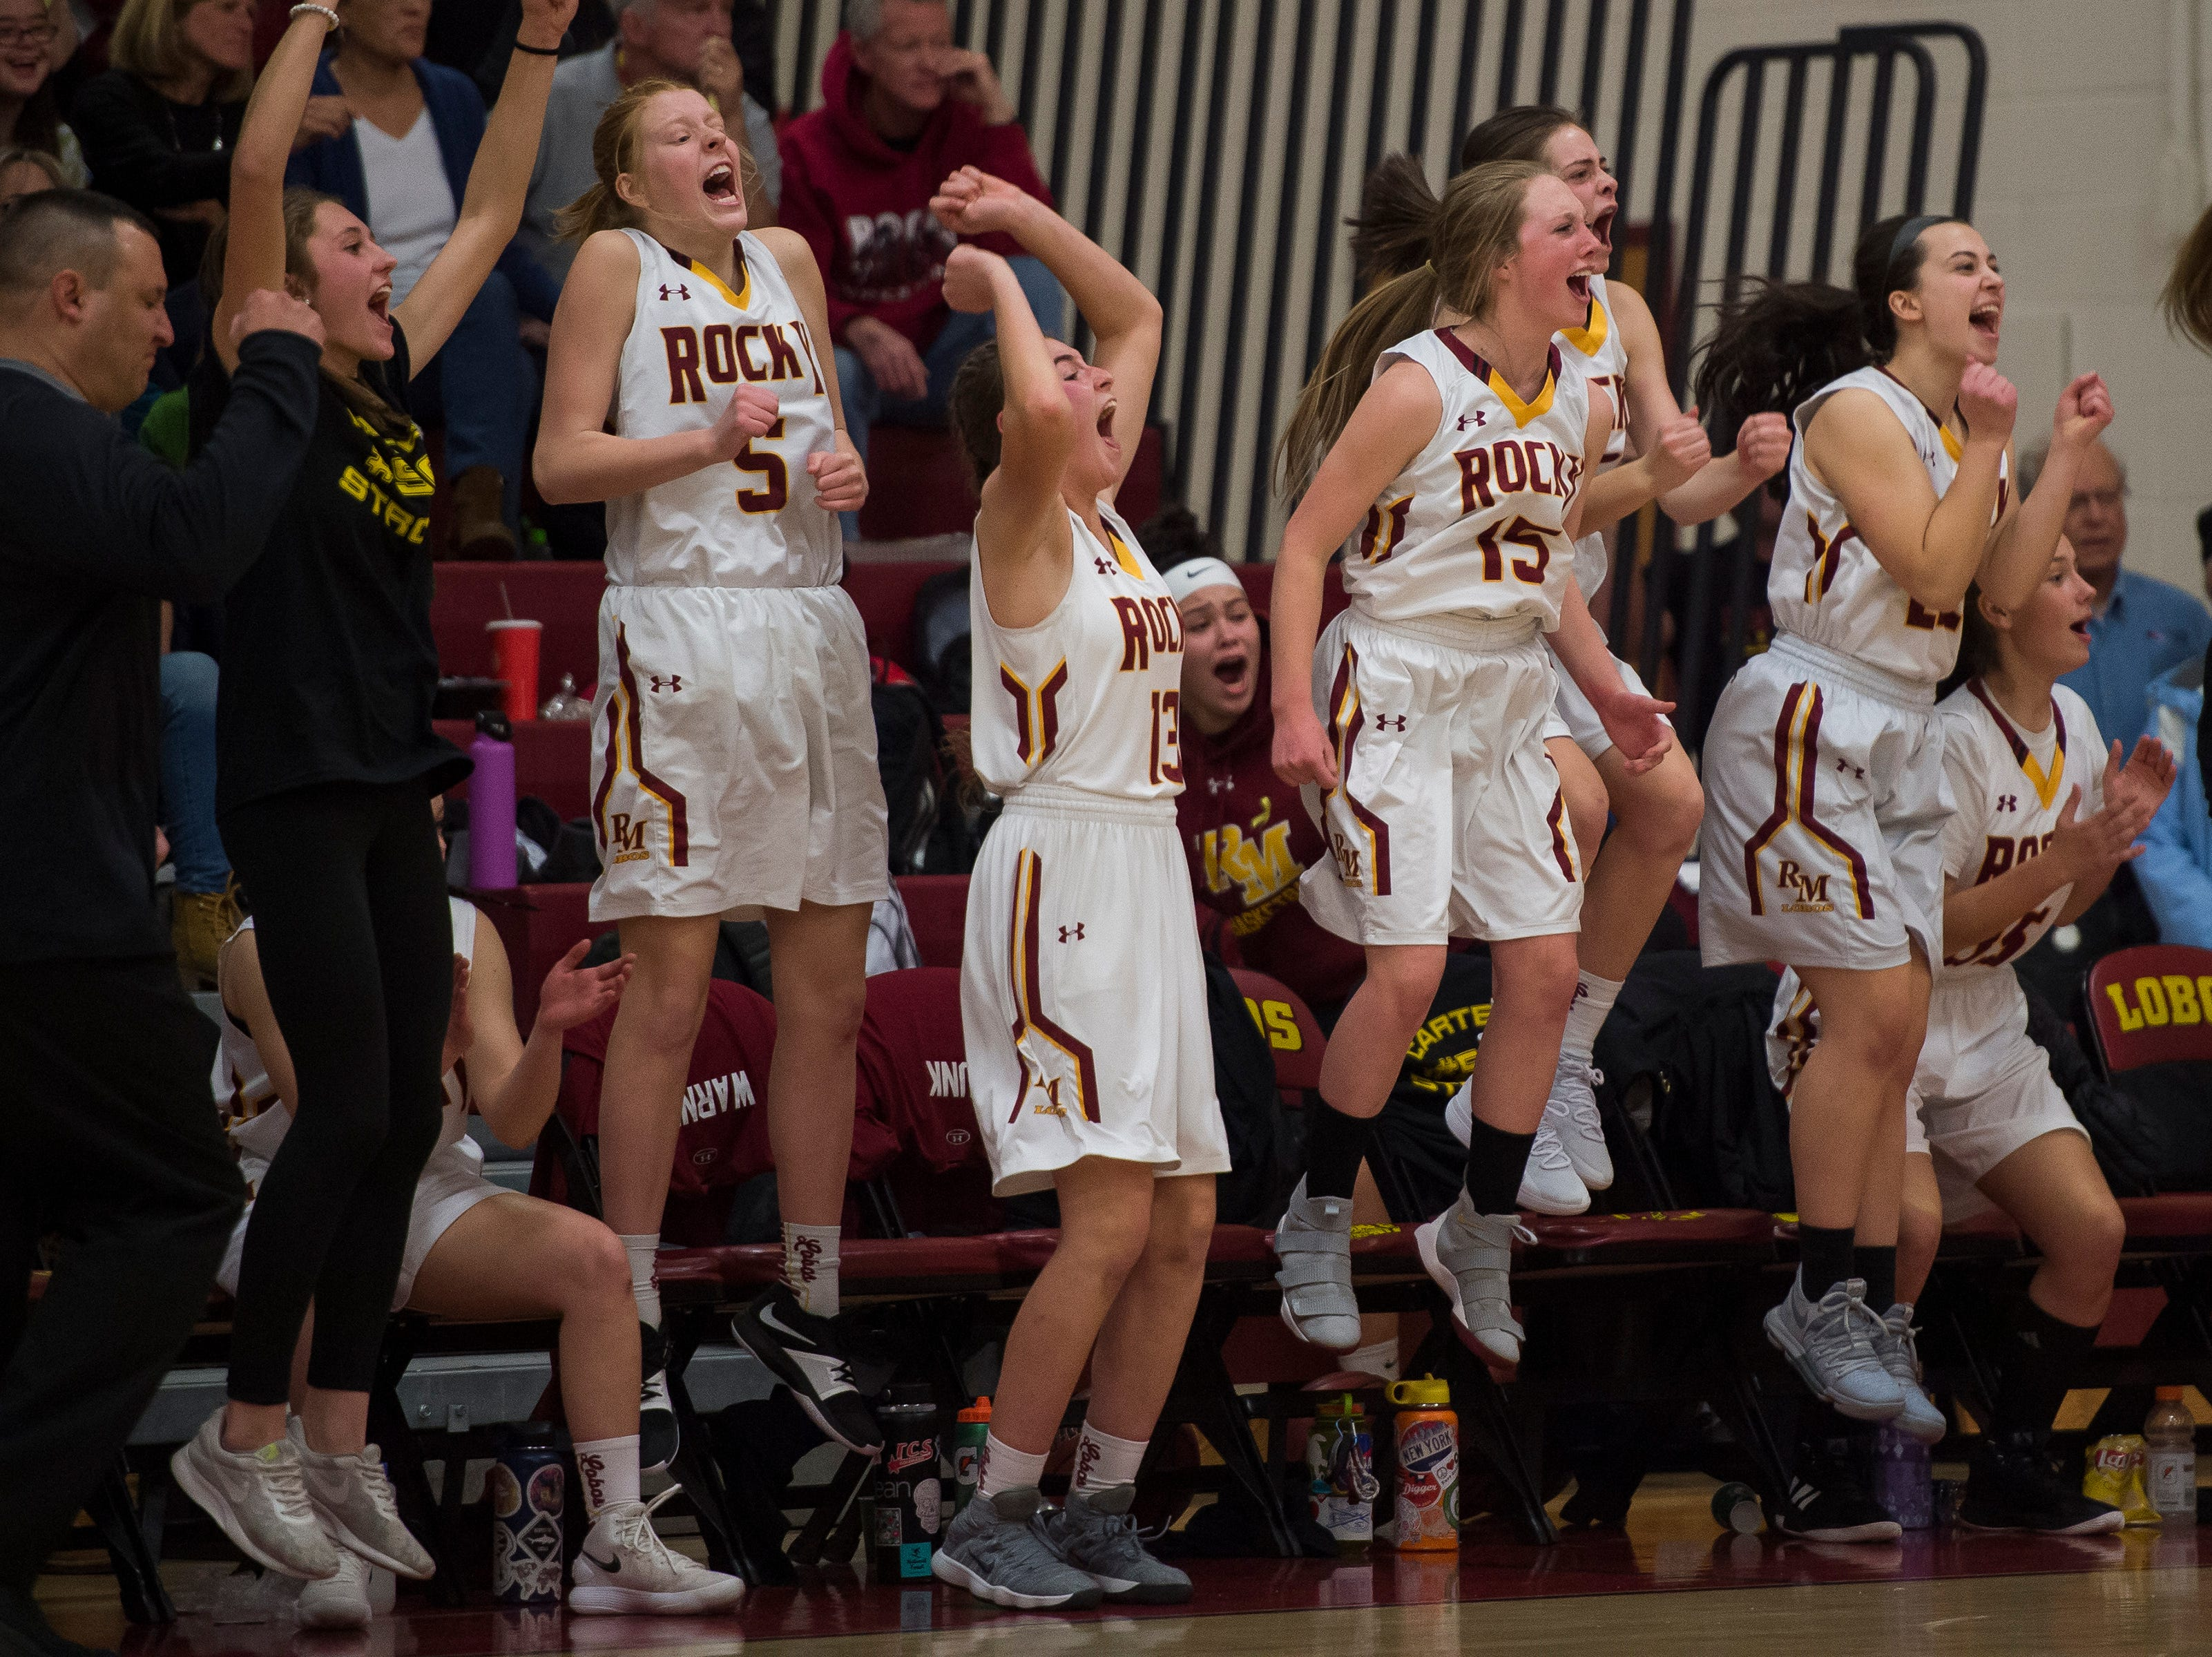 The Rocky Mountain High School bench reacts to a play in the overtime period of a game against Fort Collins High School on Friday, Jan. 18, 2019, at Rocky Mountain High School in Fort Collins, Colo.